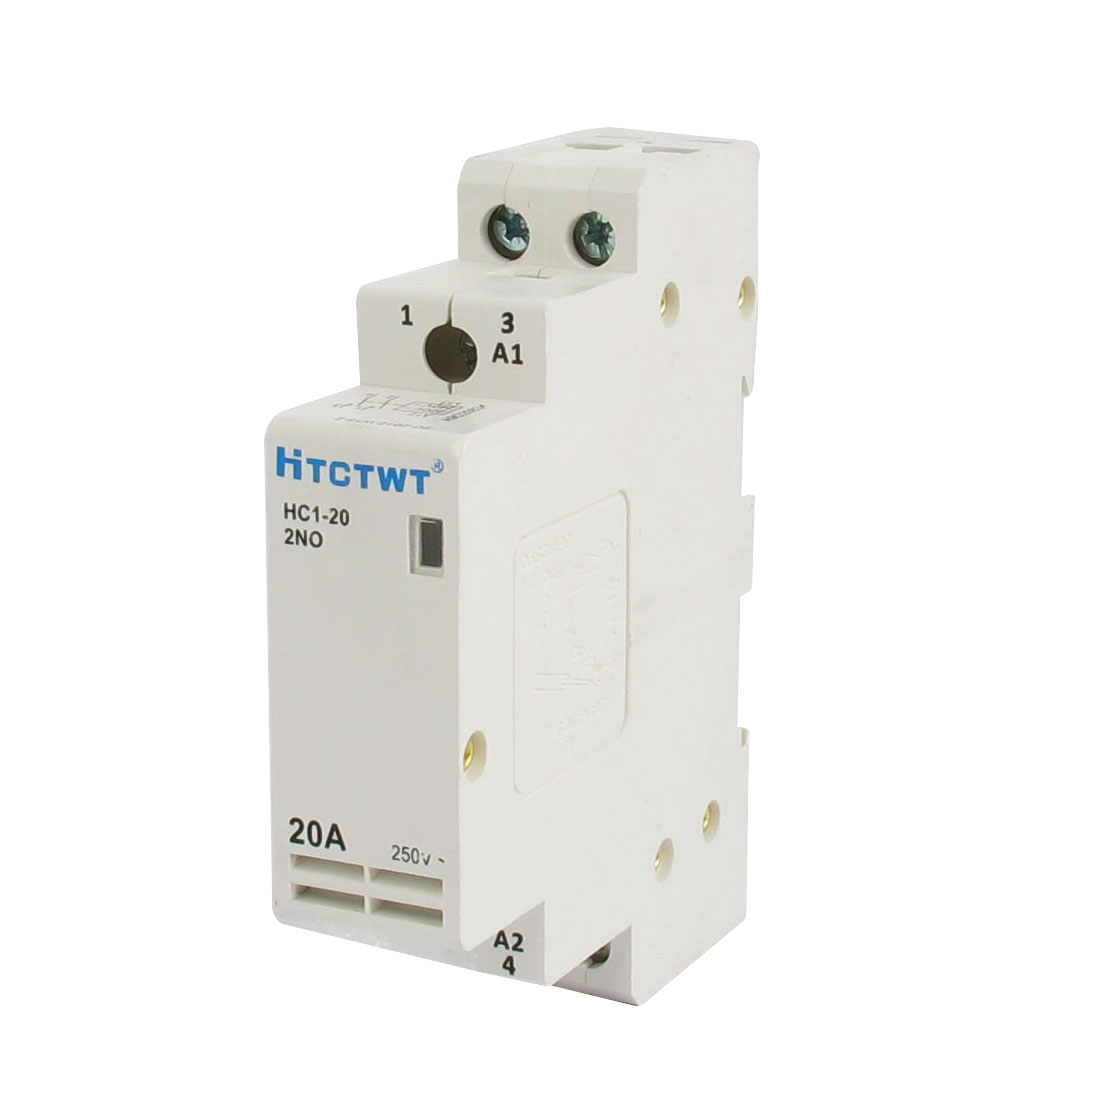 HC1-20 General Purpose Household 220/240V Coil 20A 2Pole AC Contactor